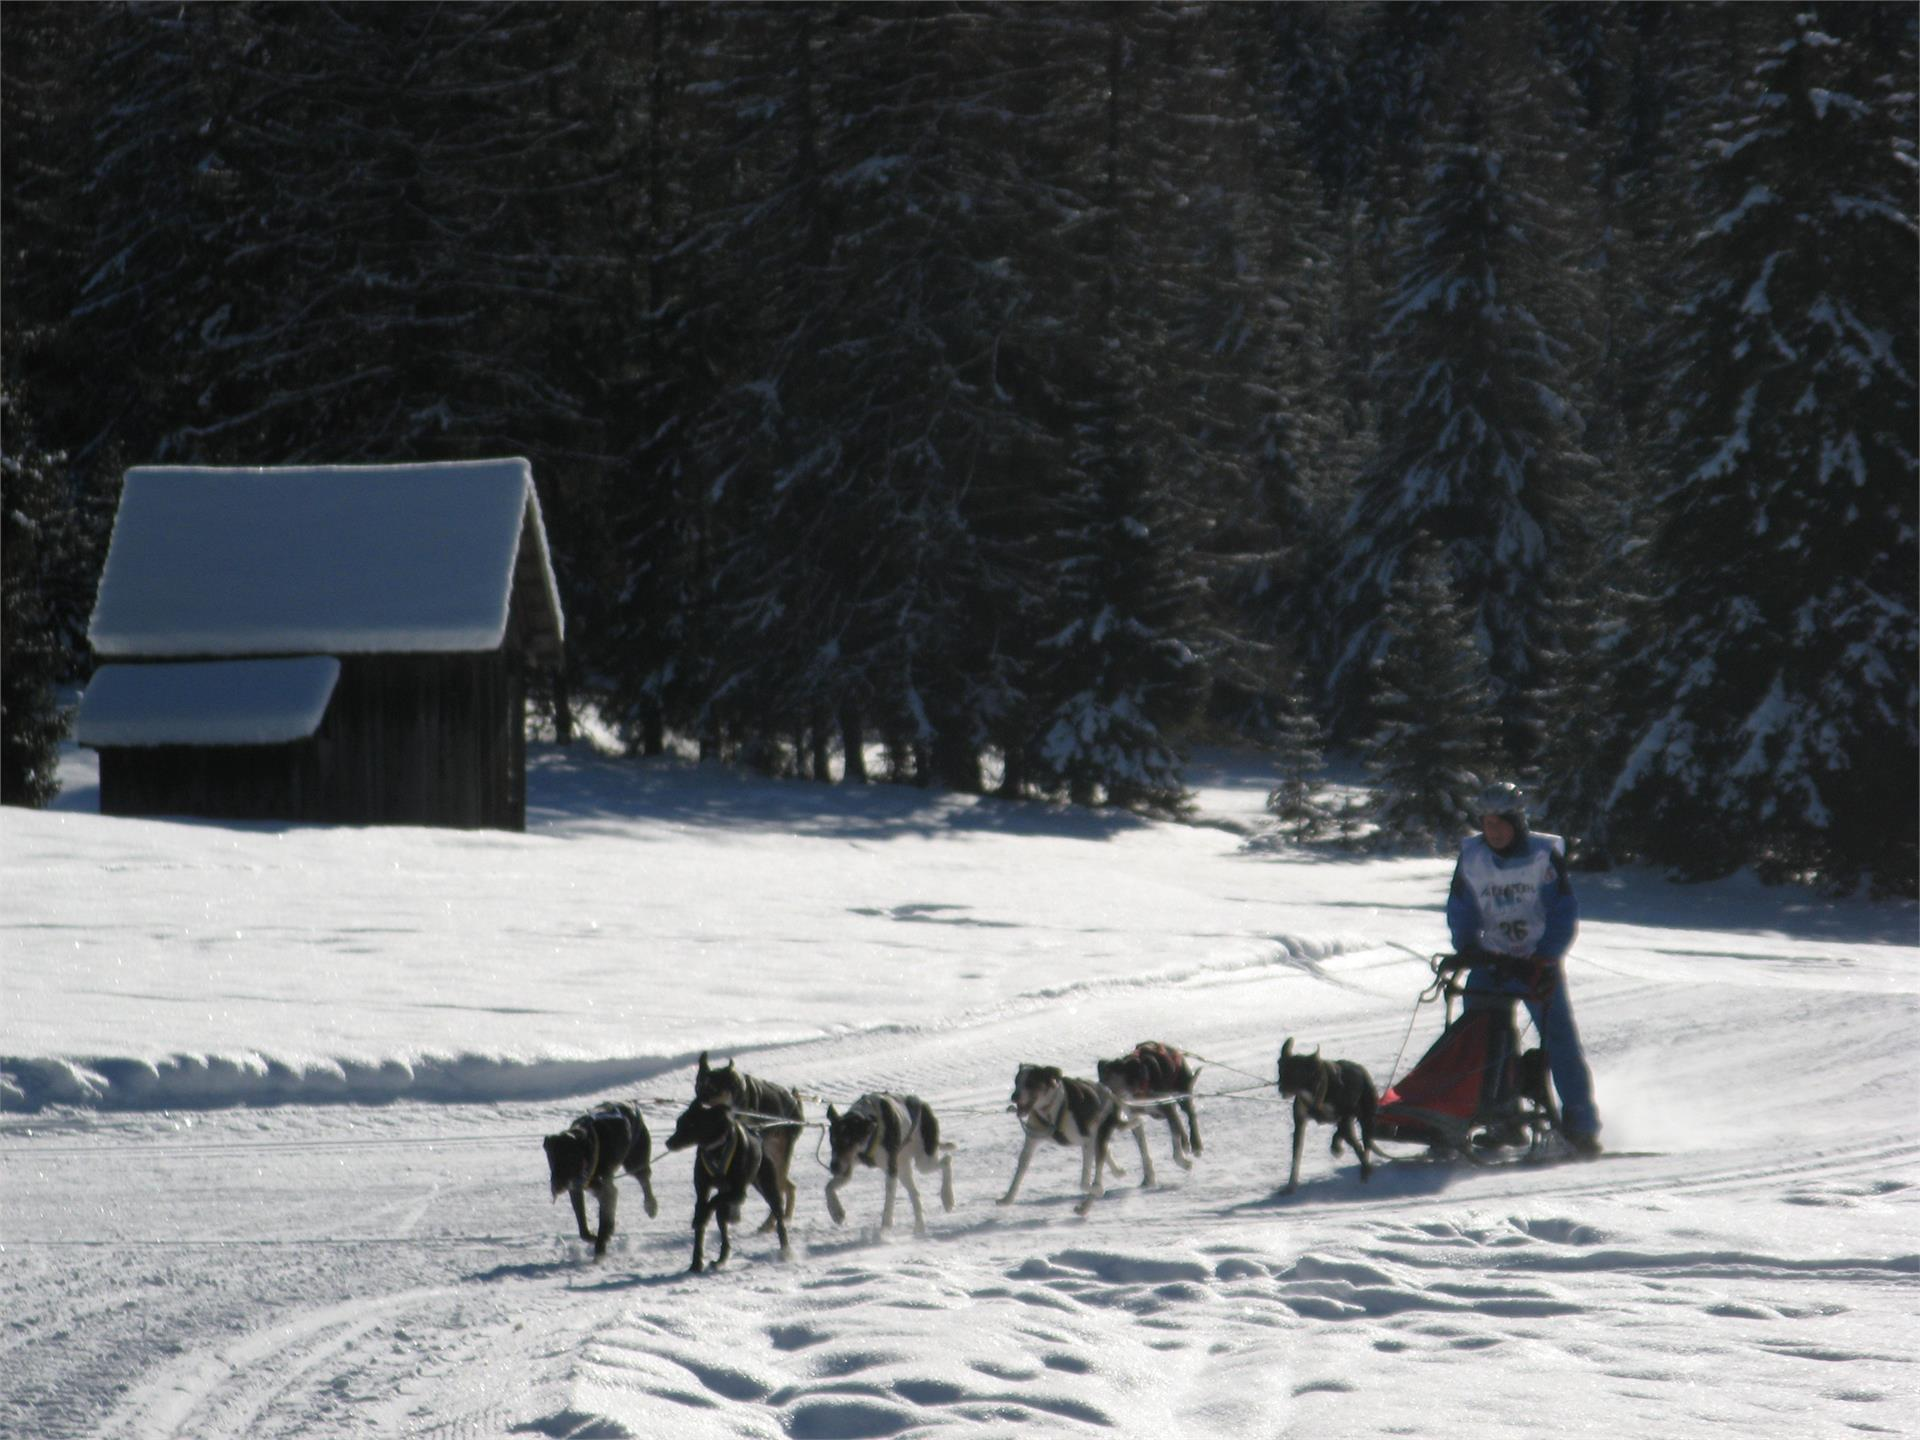 Alpentrail - gara internazionale sledge dog